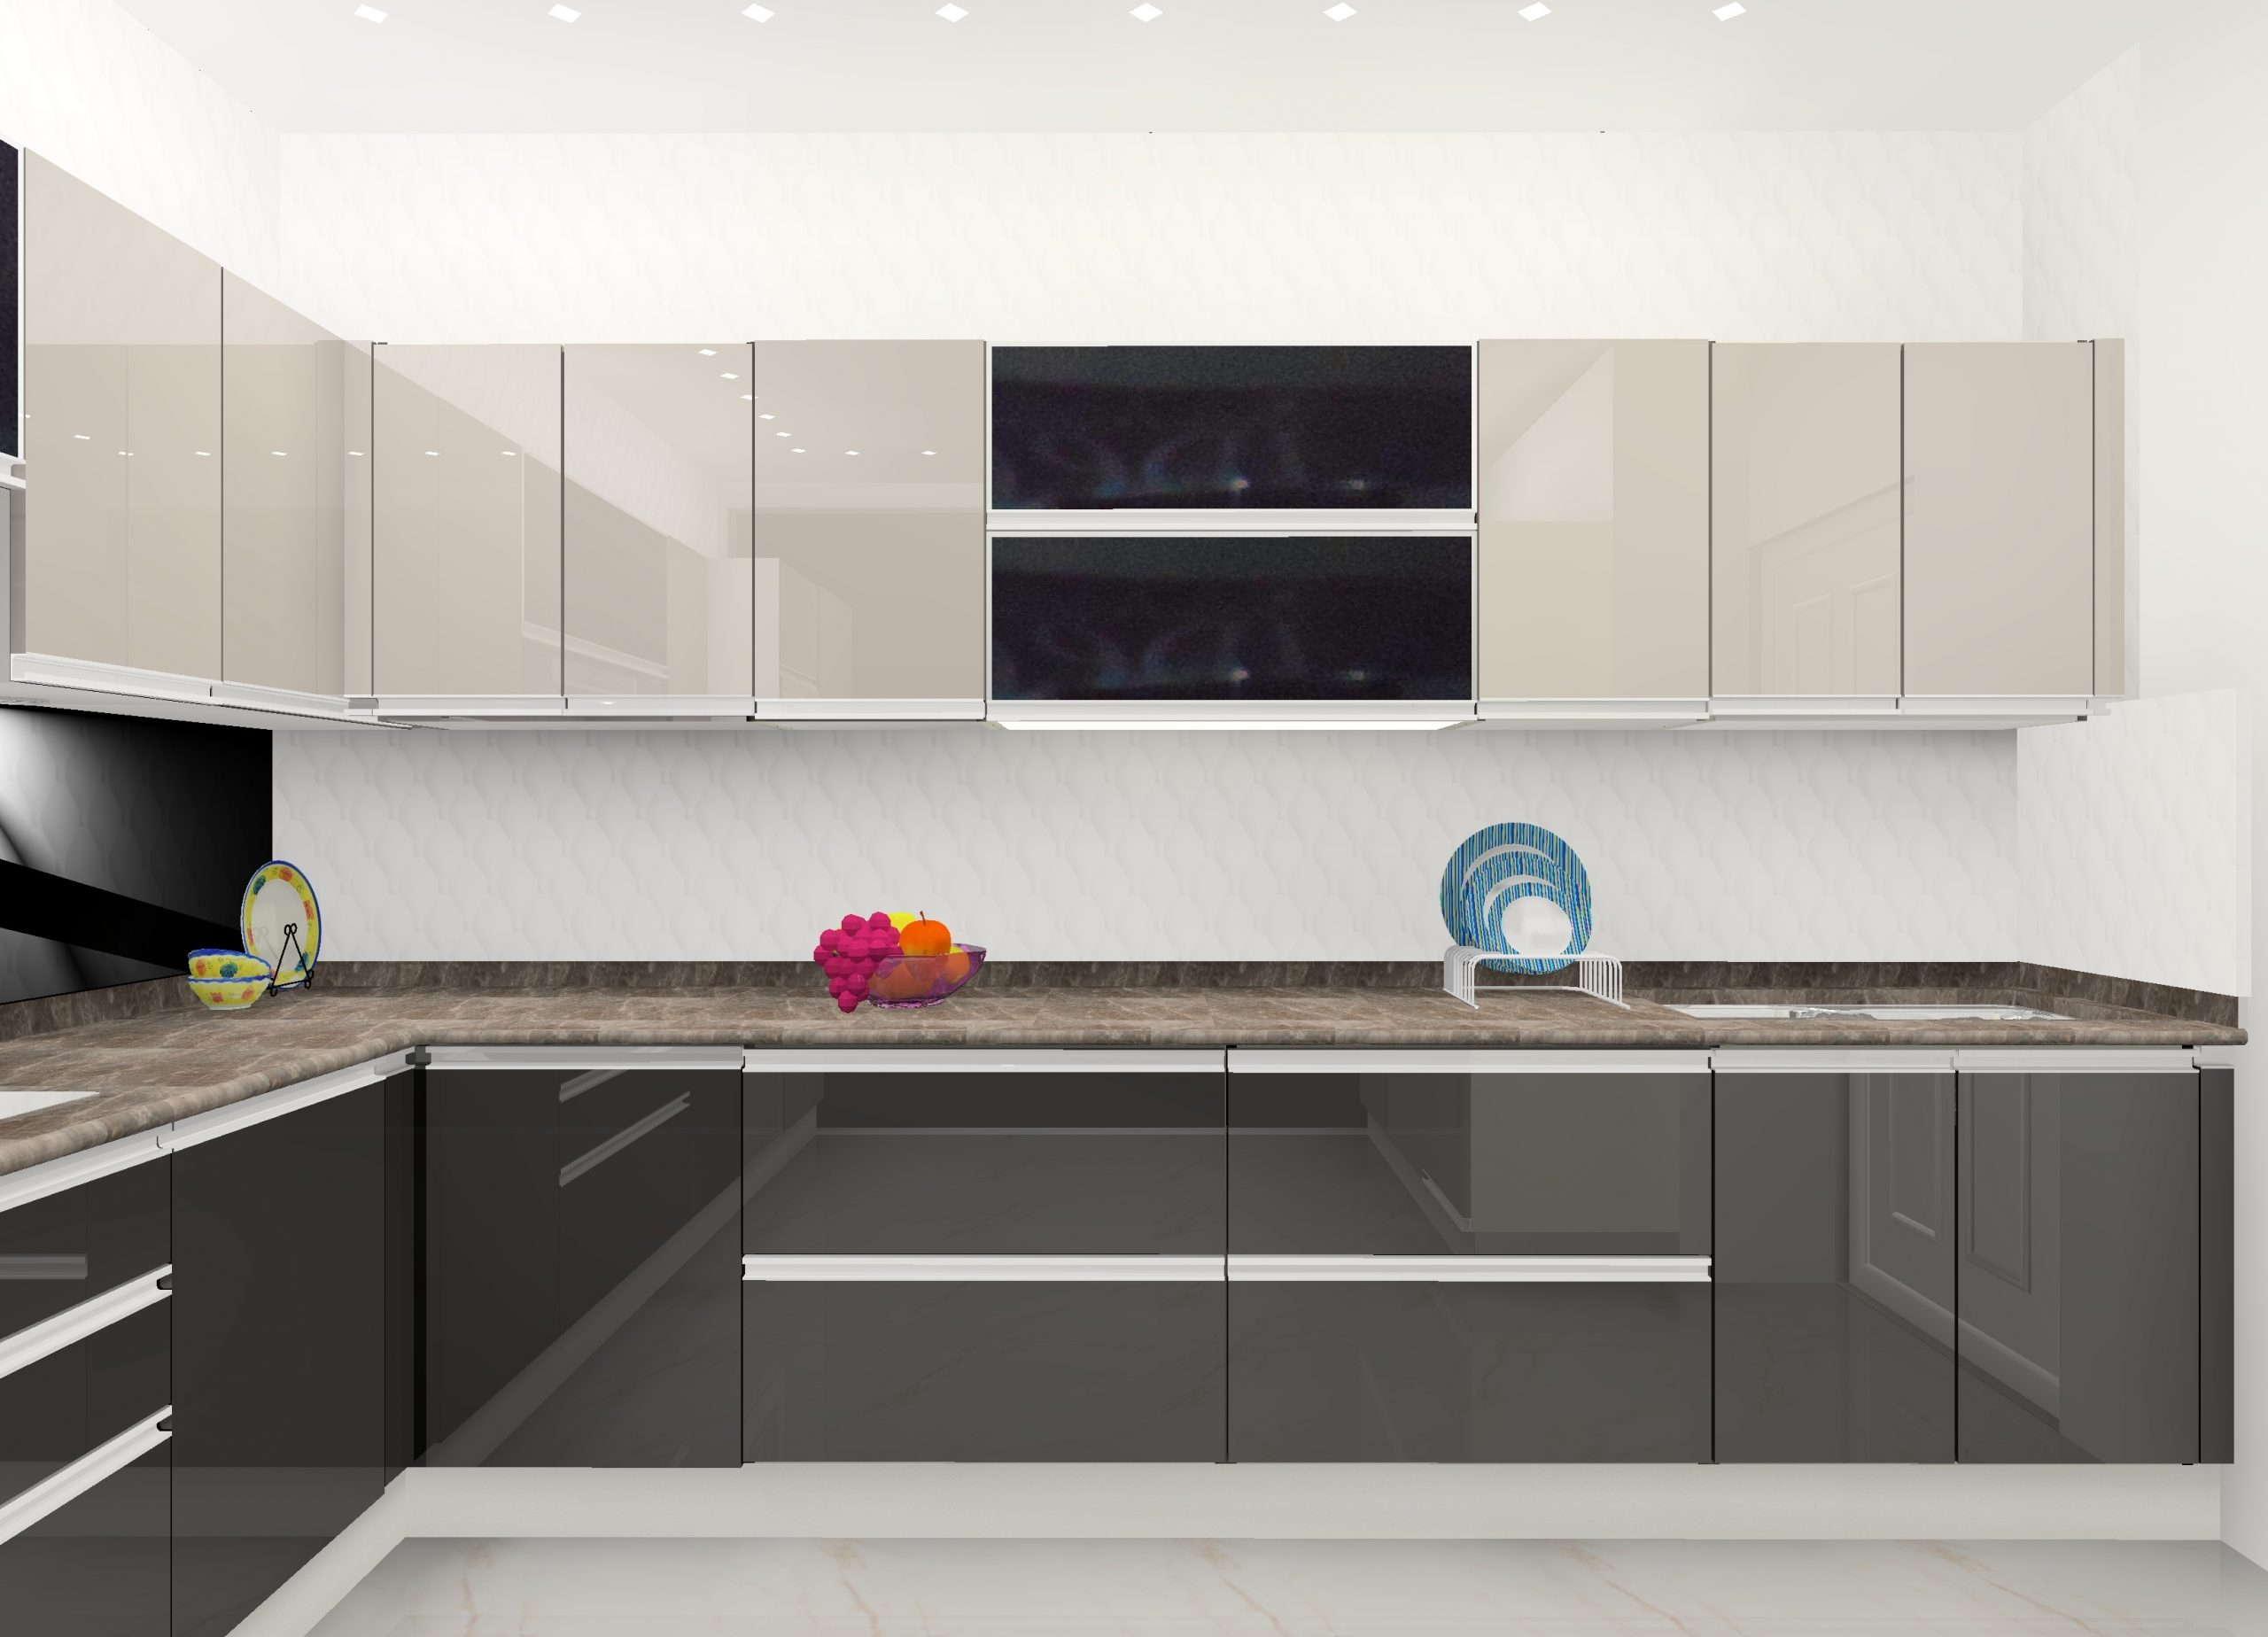 Modular Kitchen - Modular Kitchen Designers In Delhi Ncr with regard to Latest Modular Kitchen Design 2018